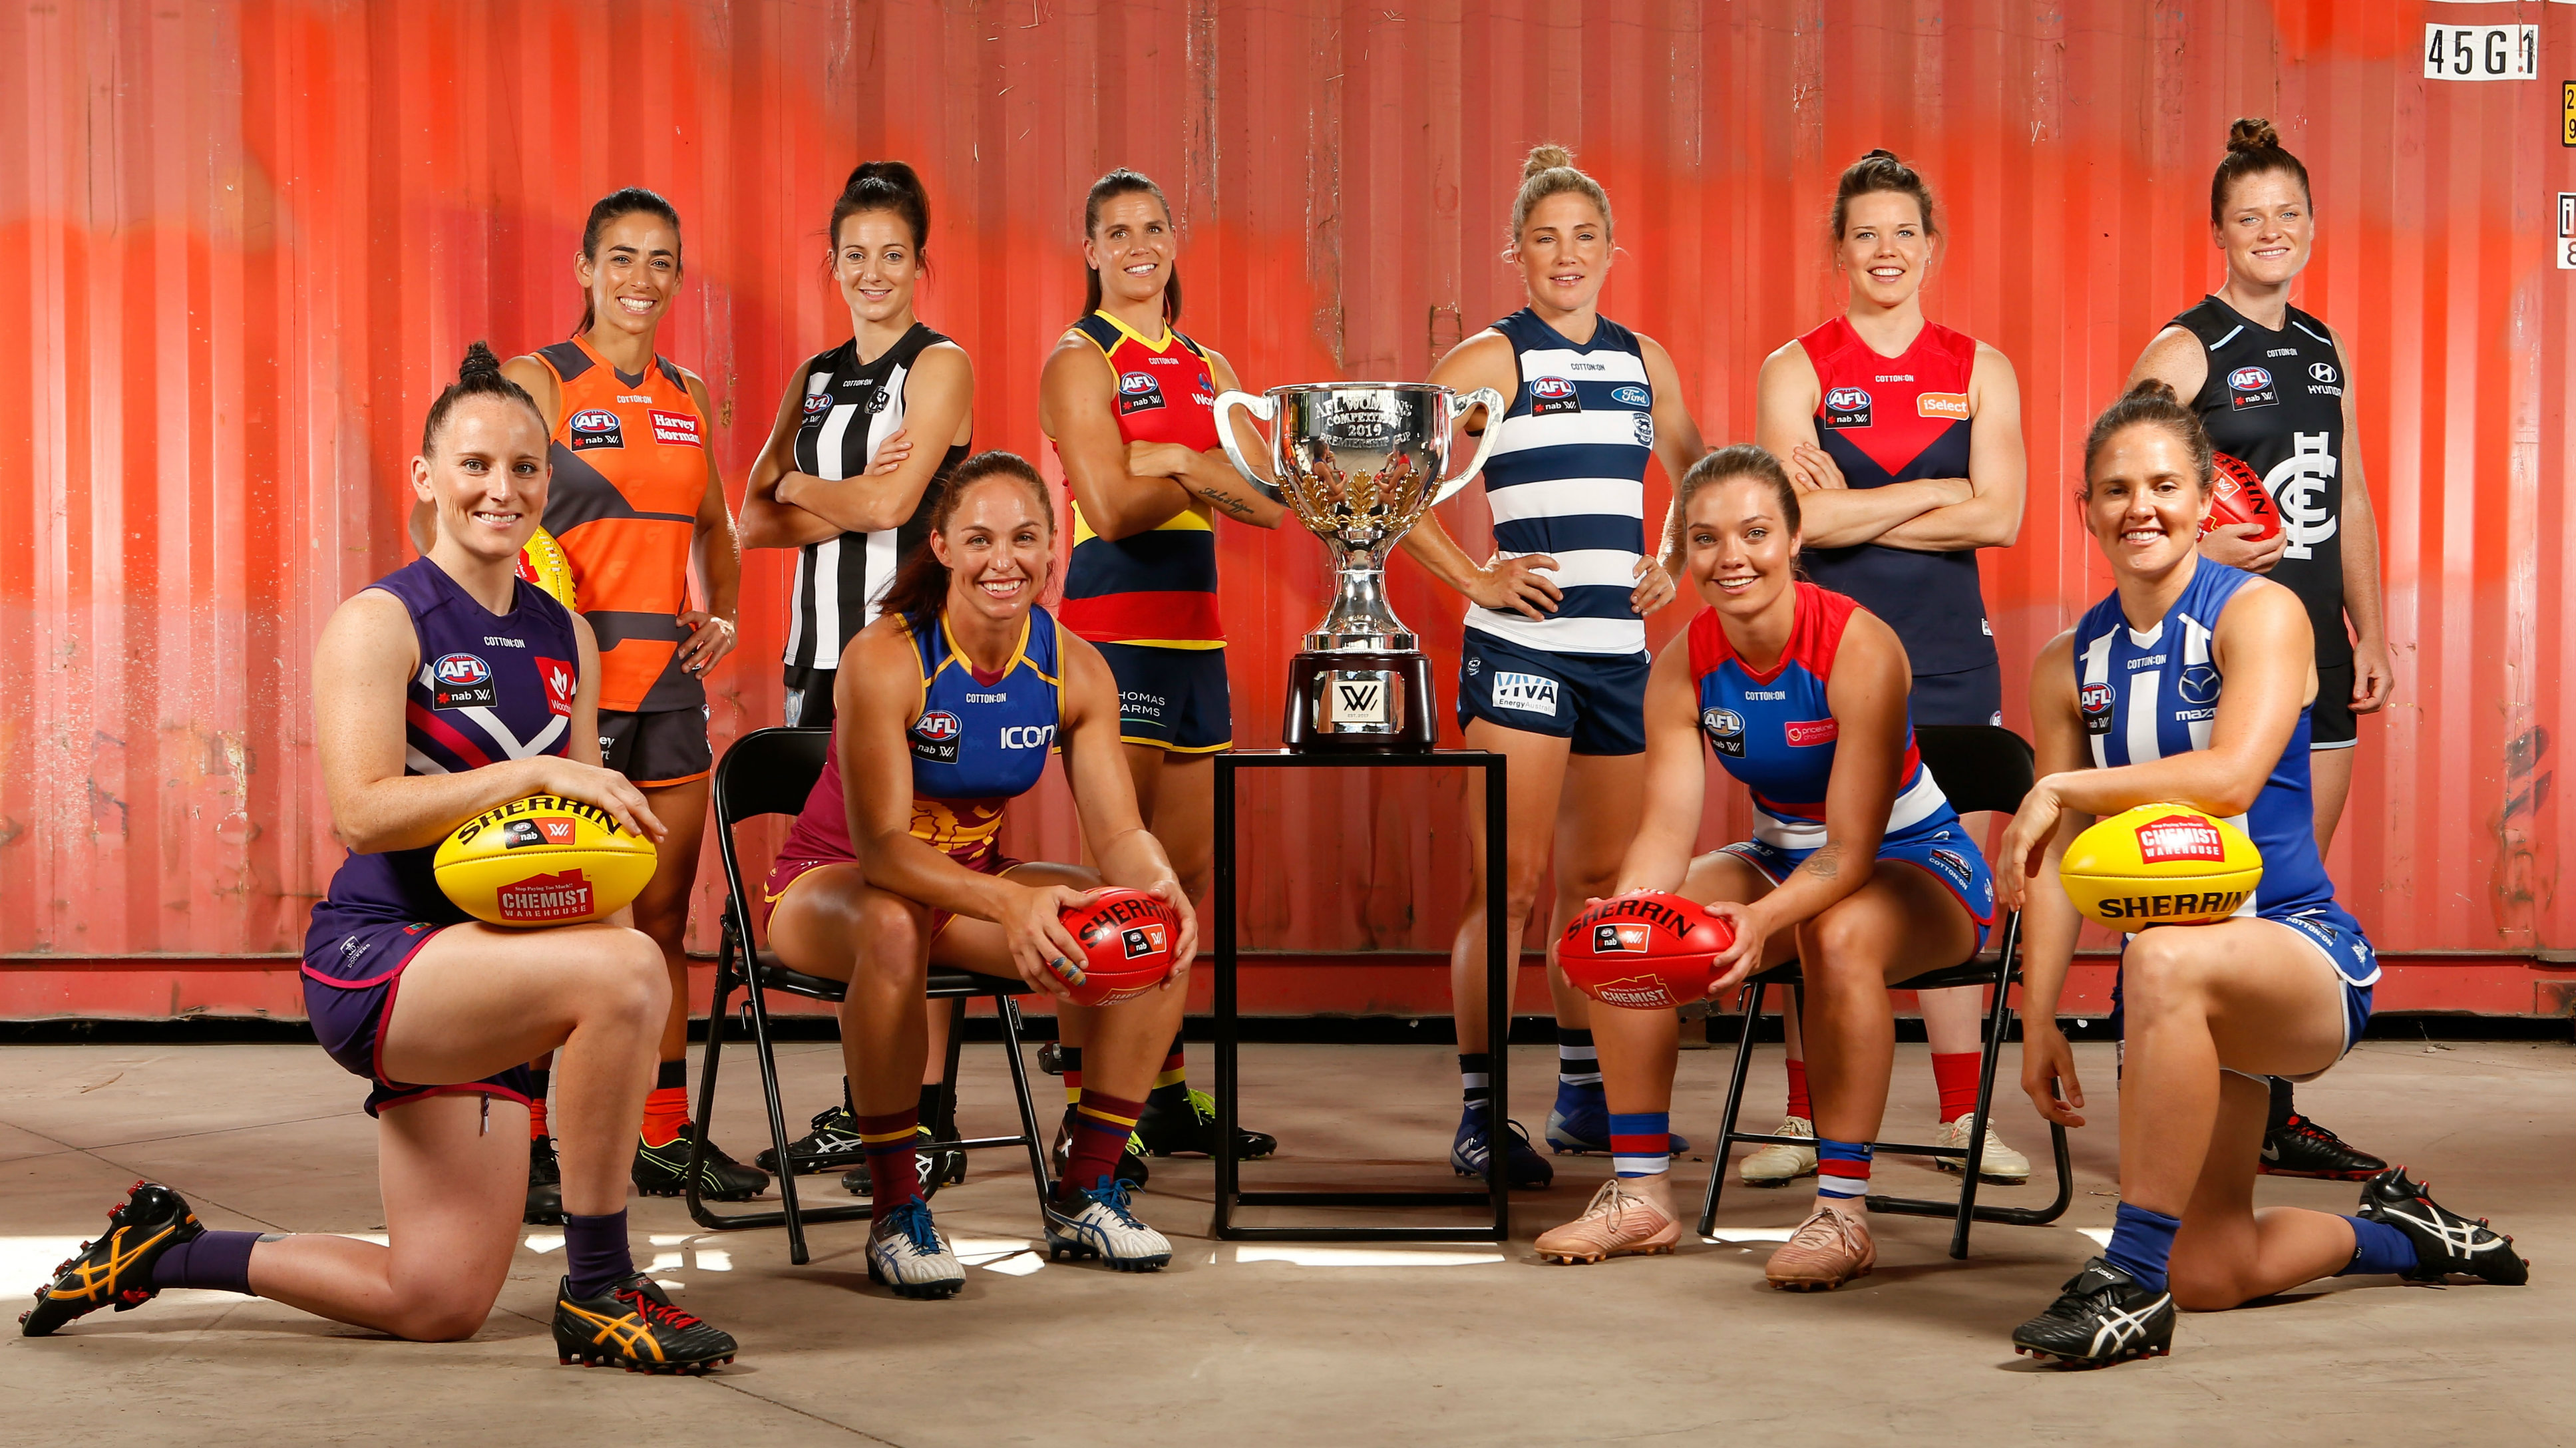 AFLW 2019: Live scores, fixtures, teams, how to watch | Sporting News